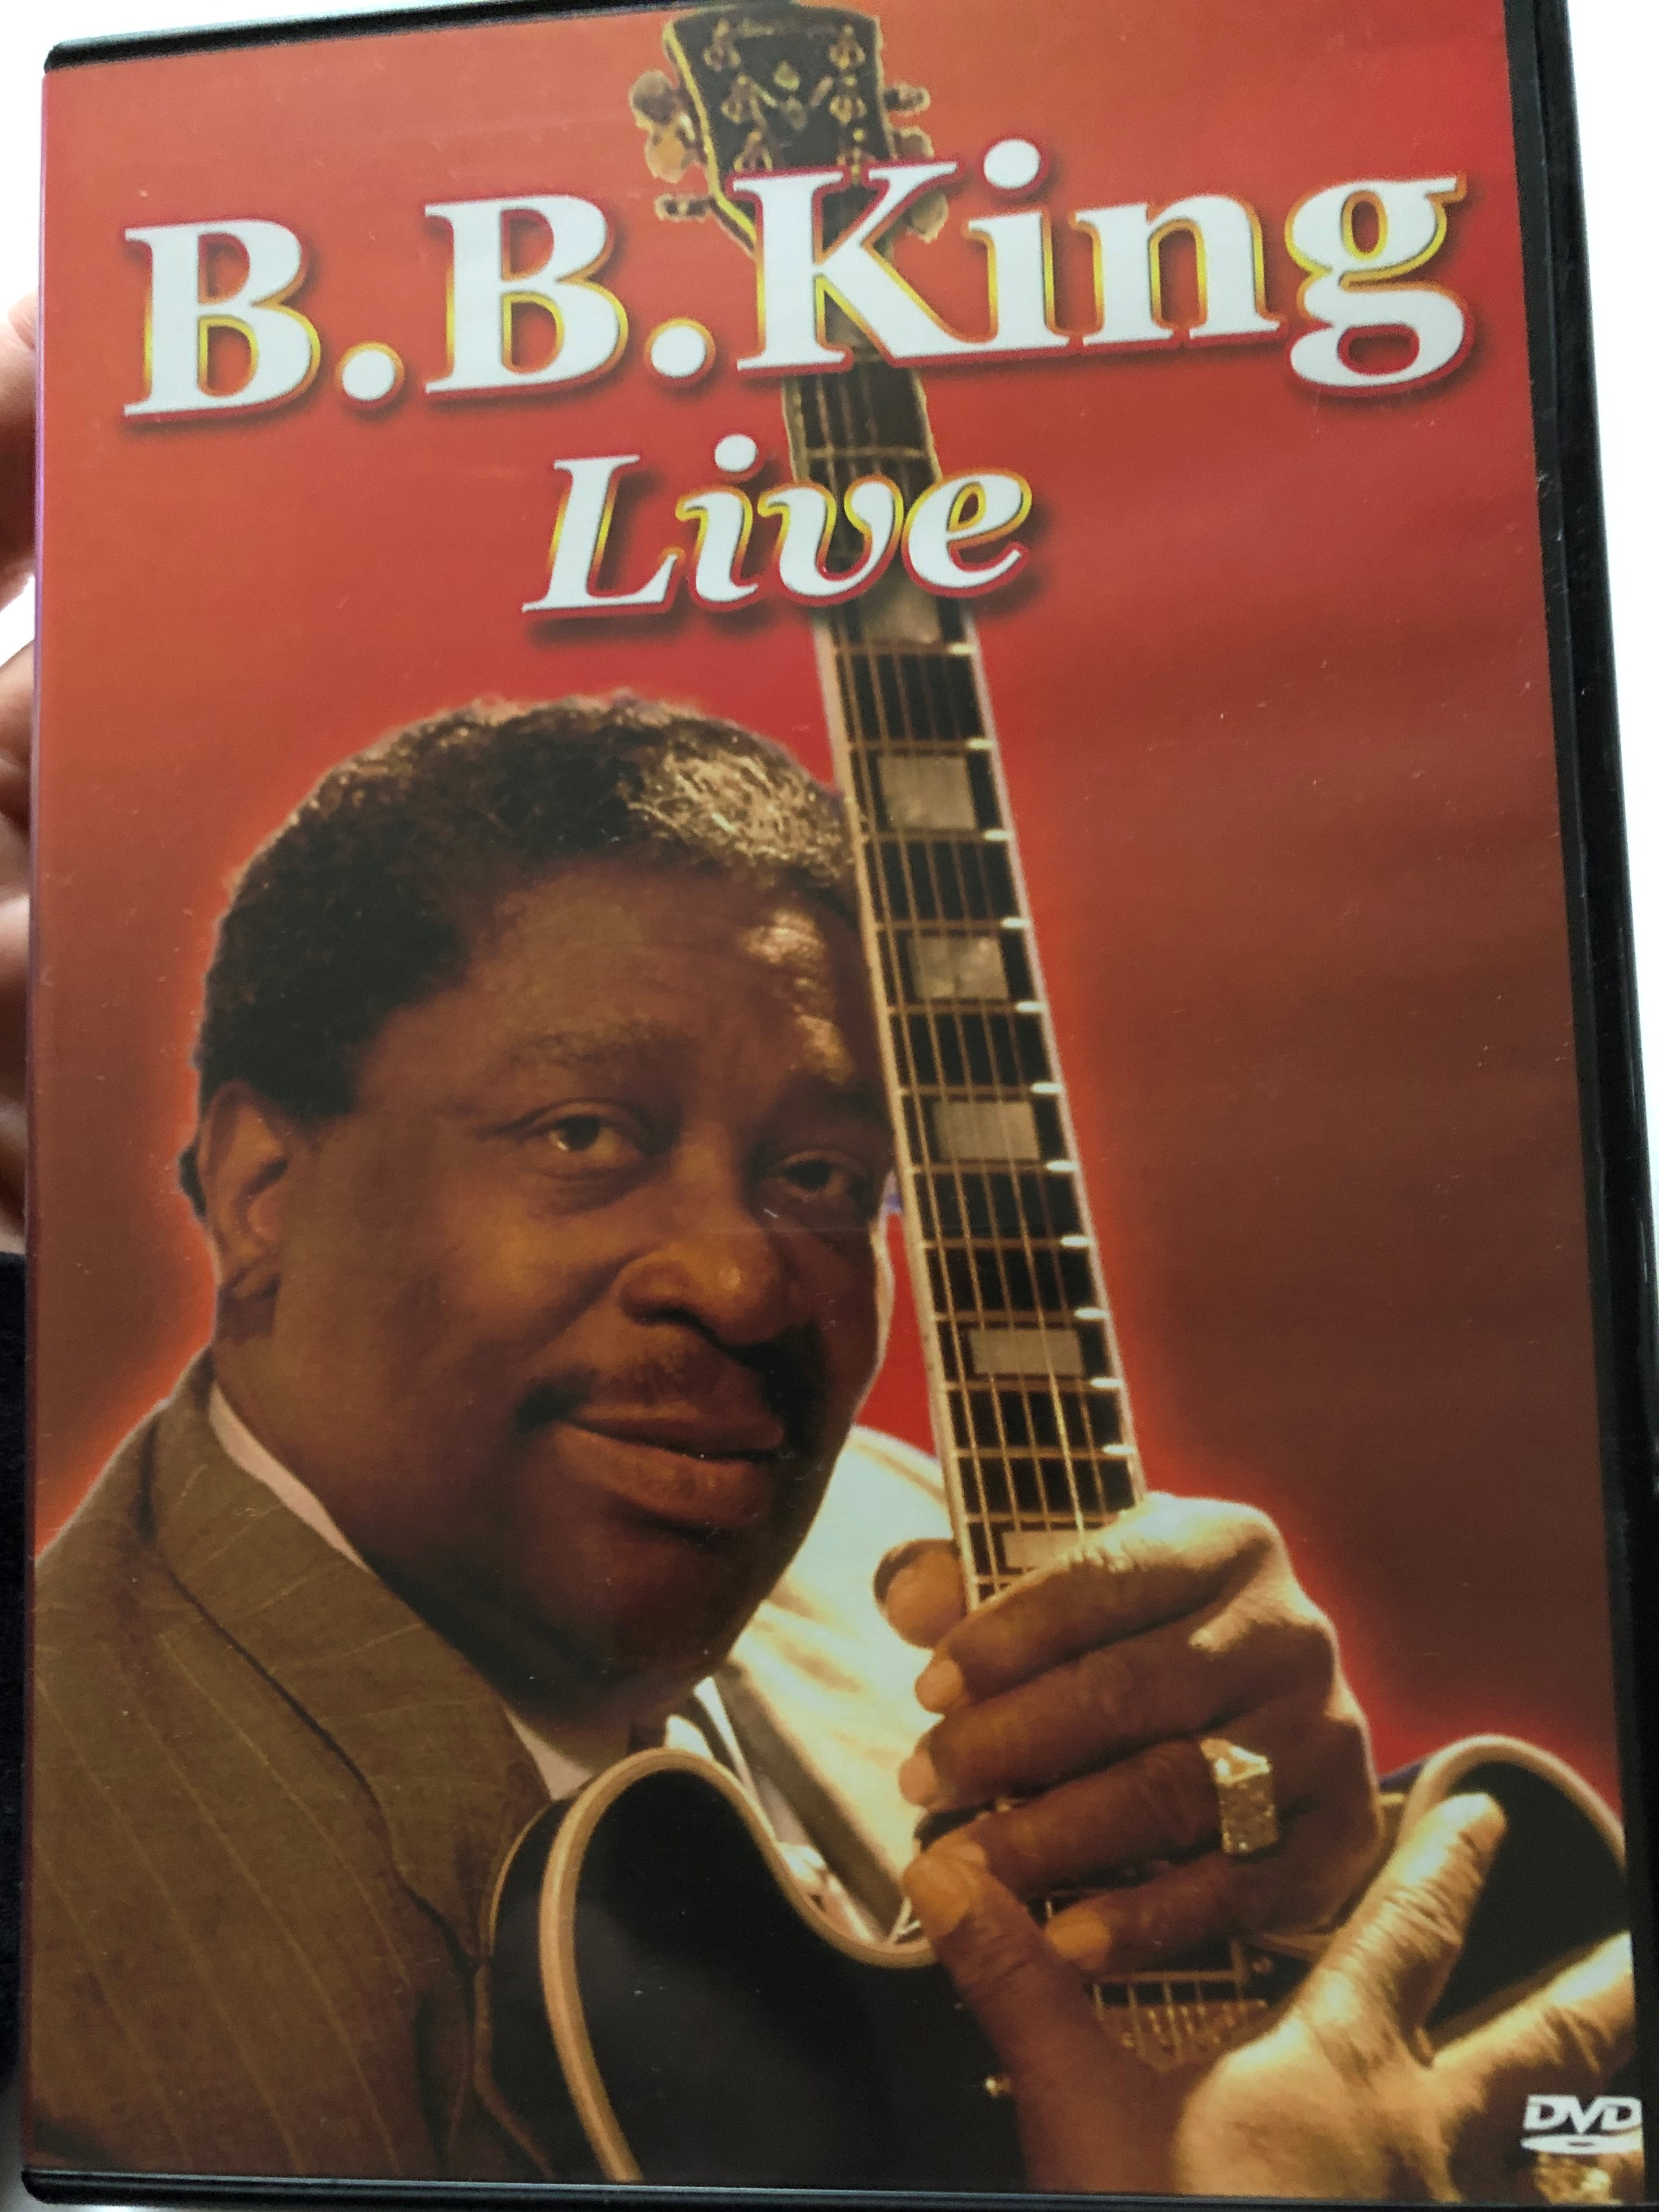 b.b-king-live-dvd-2005-to-know-you-is-to-love-you-why-i-sing-the-blues-the-thrill-is-gone-guess-who-black-blues-8555-1-.jpg